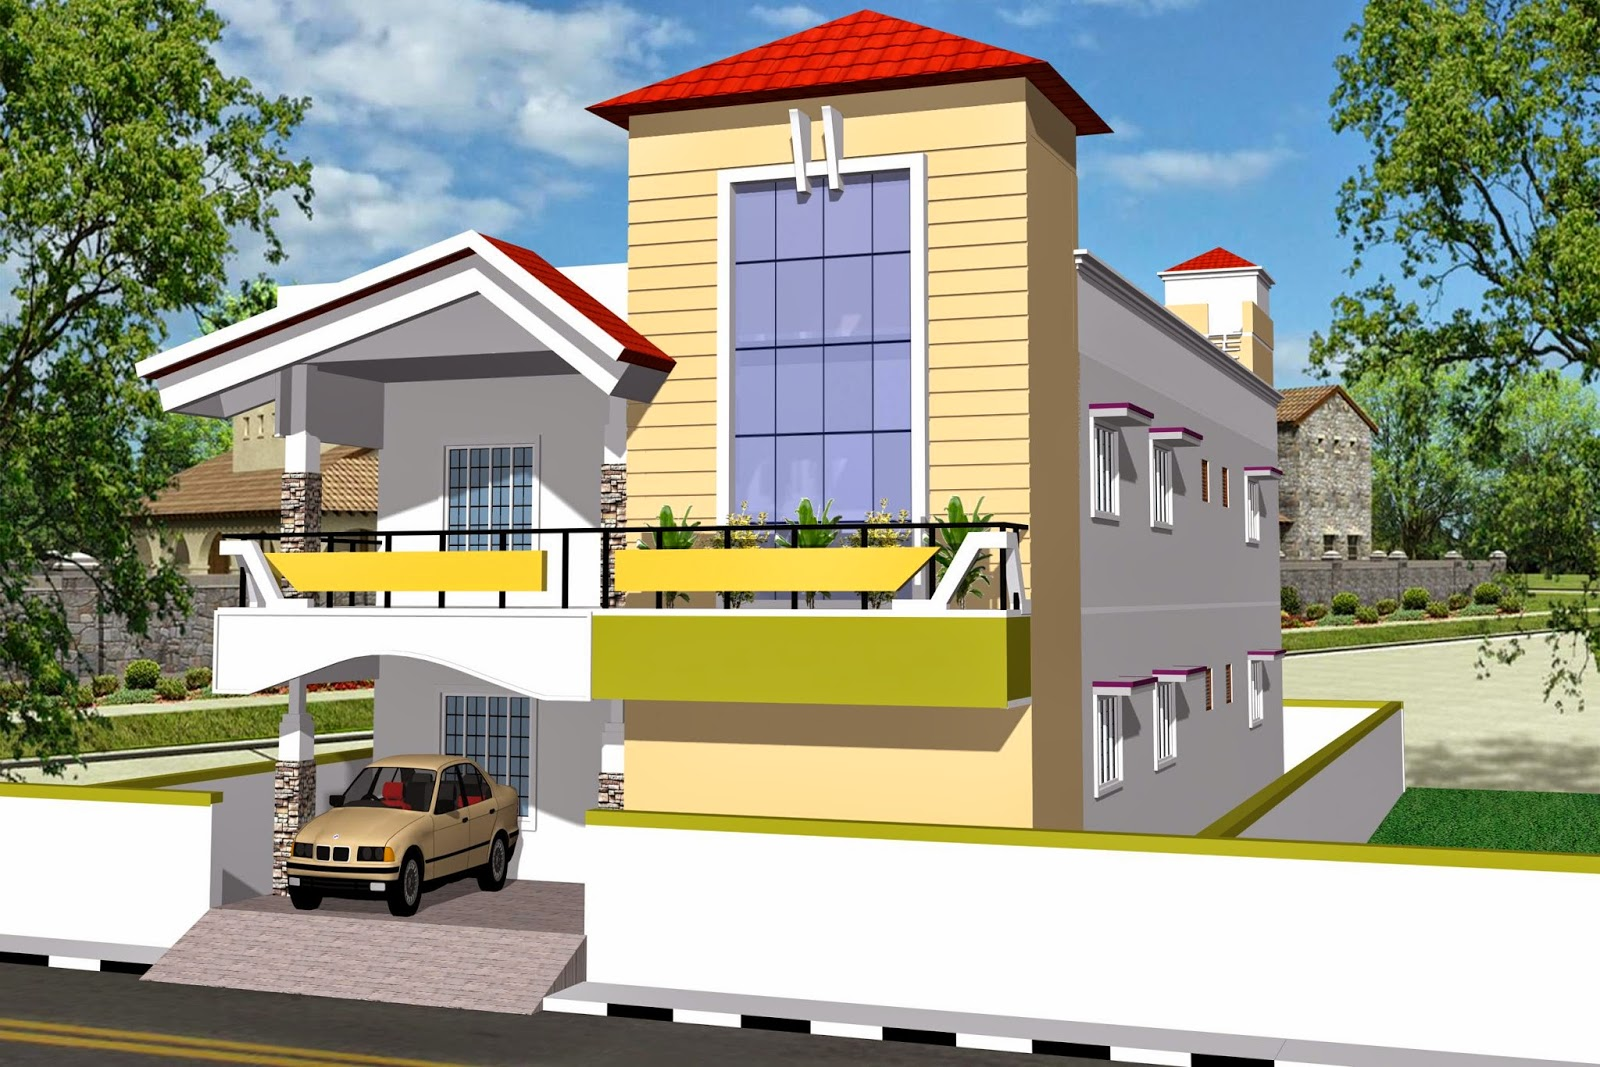 Luckydesigners 3d elevation residential building for 3d house builder online